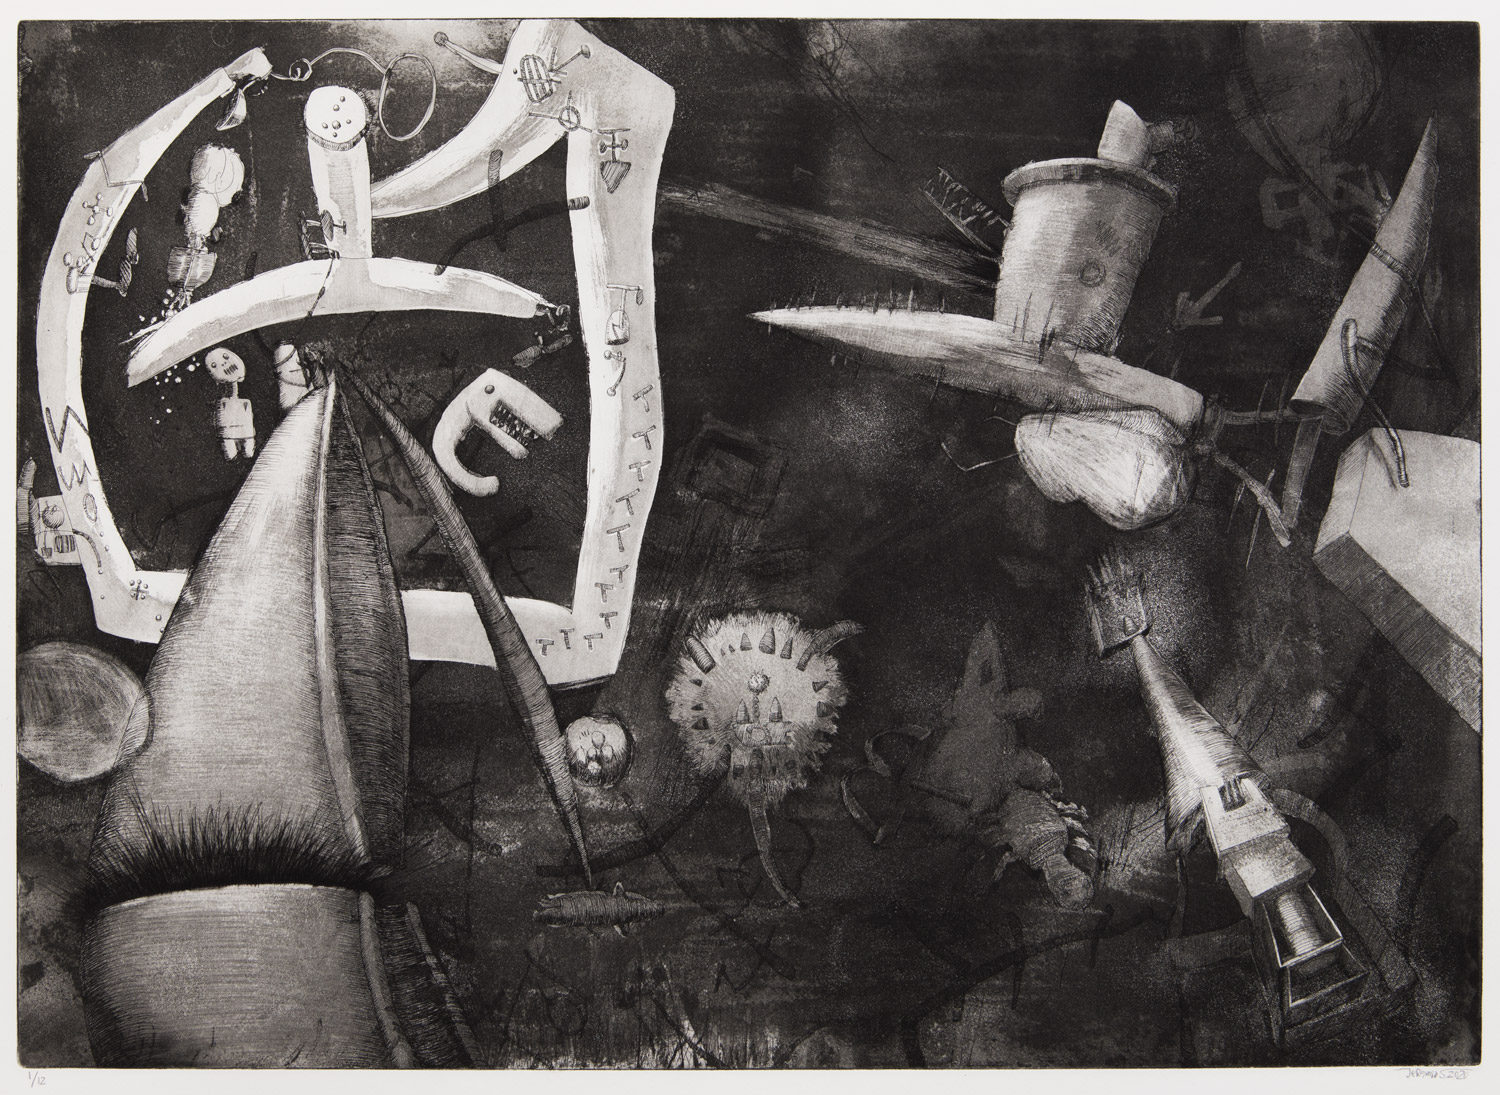 Universals; 70 x 50 cm; etching on etching paper, edition of 12; 2020